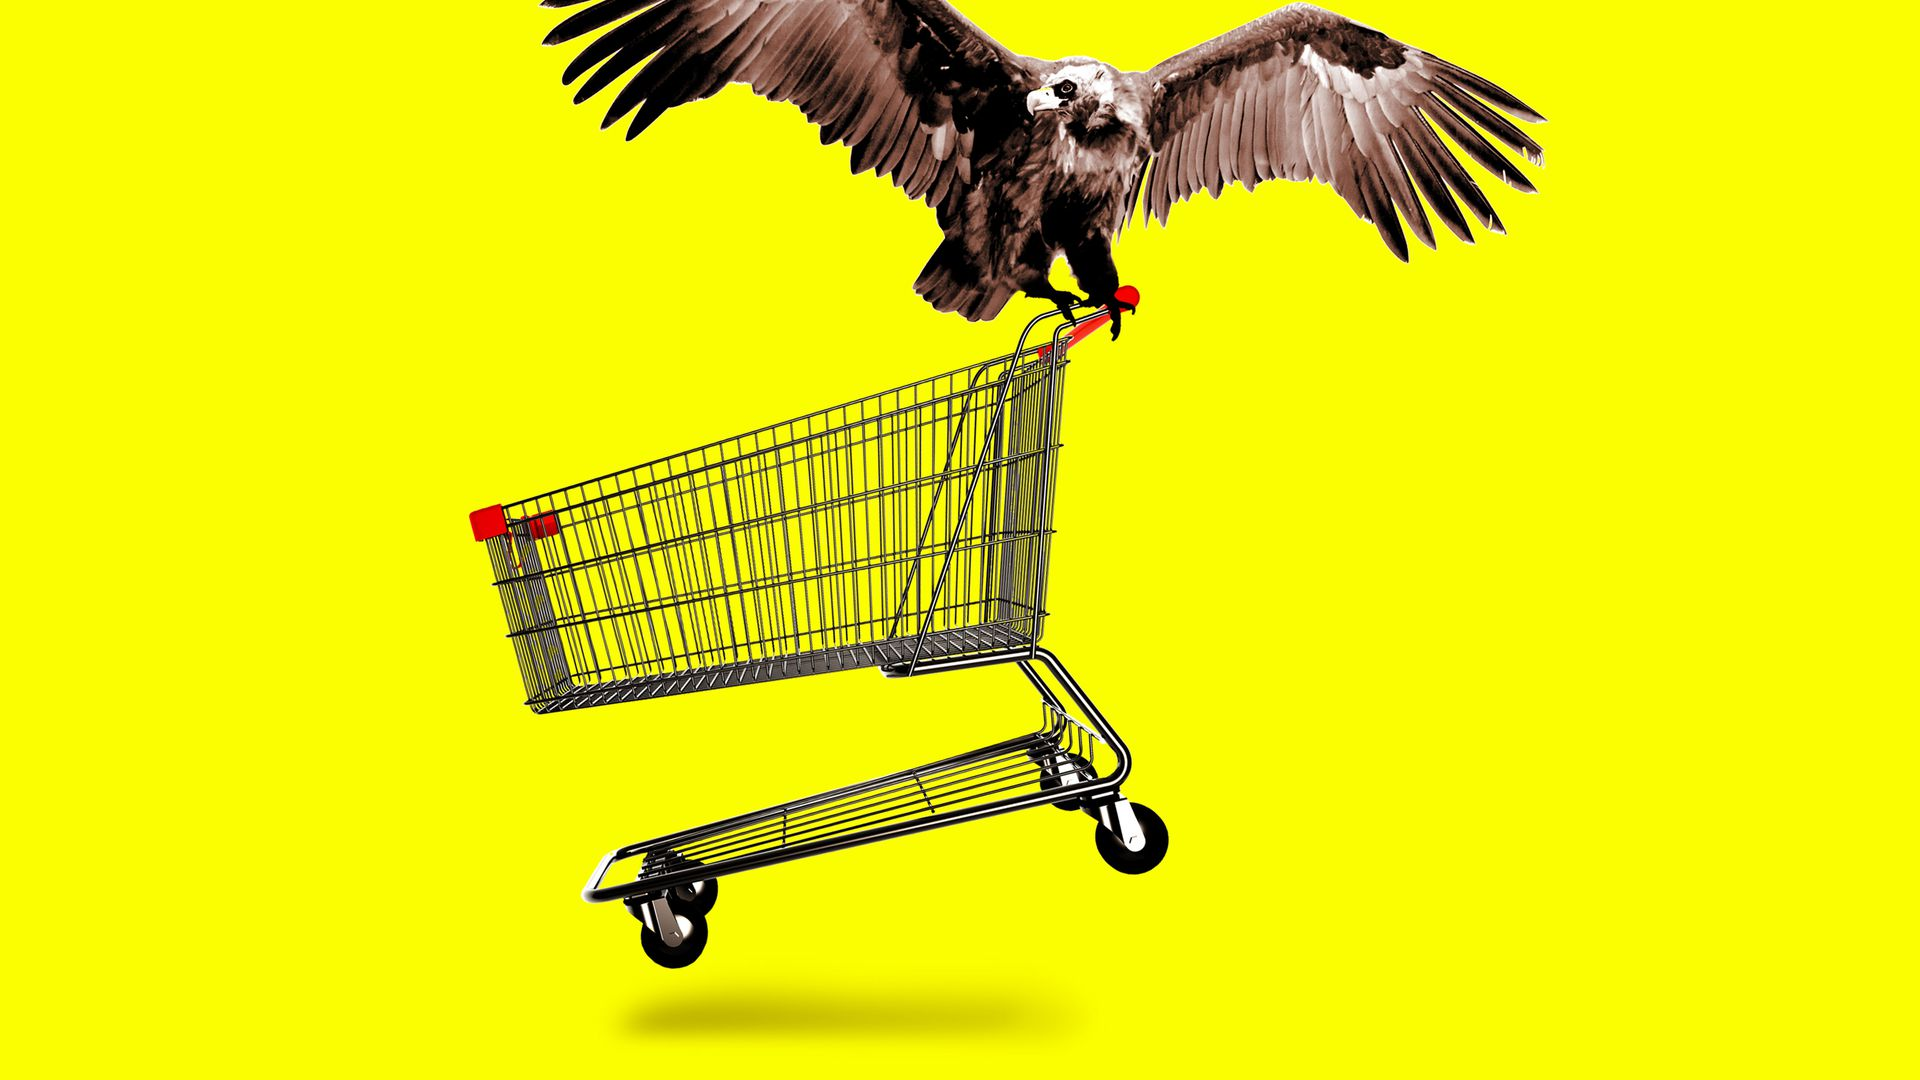 Vulture carrying away a shopping cart